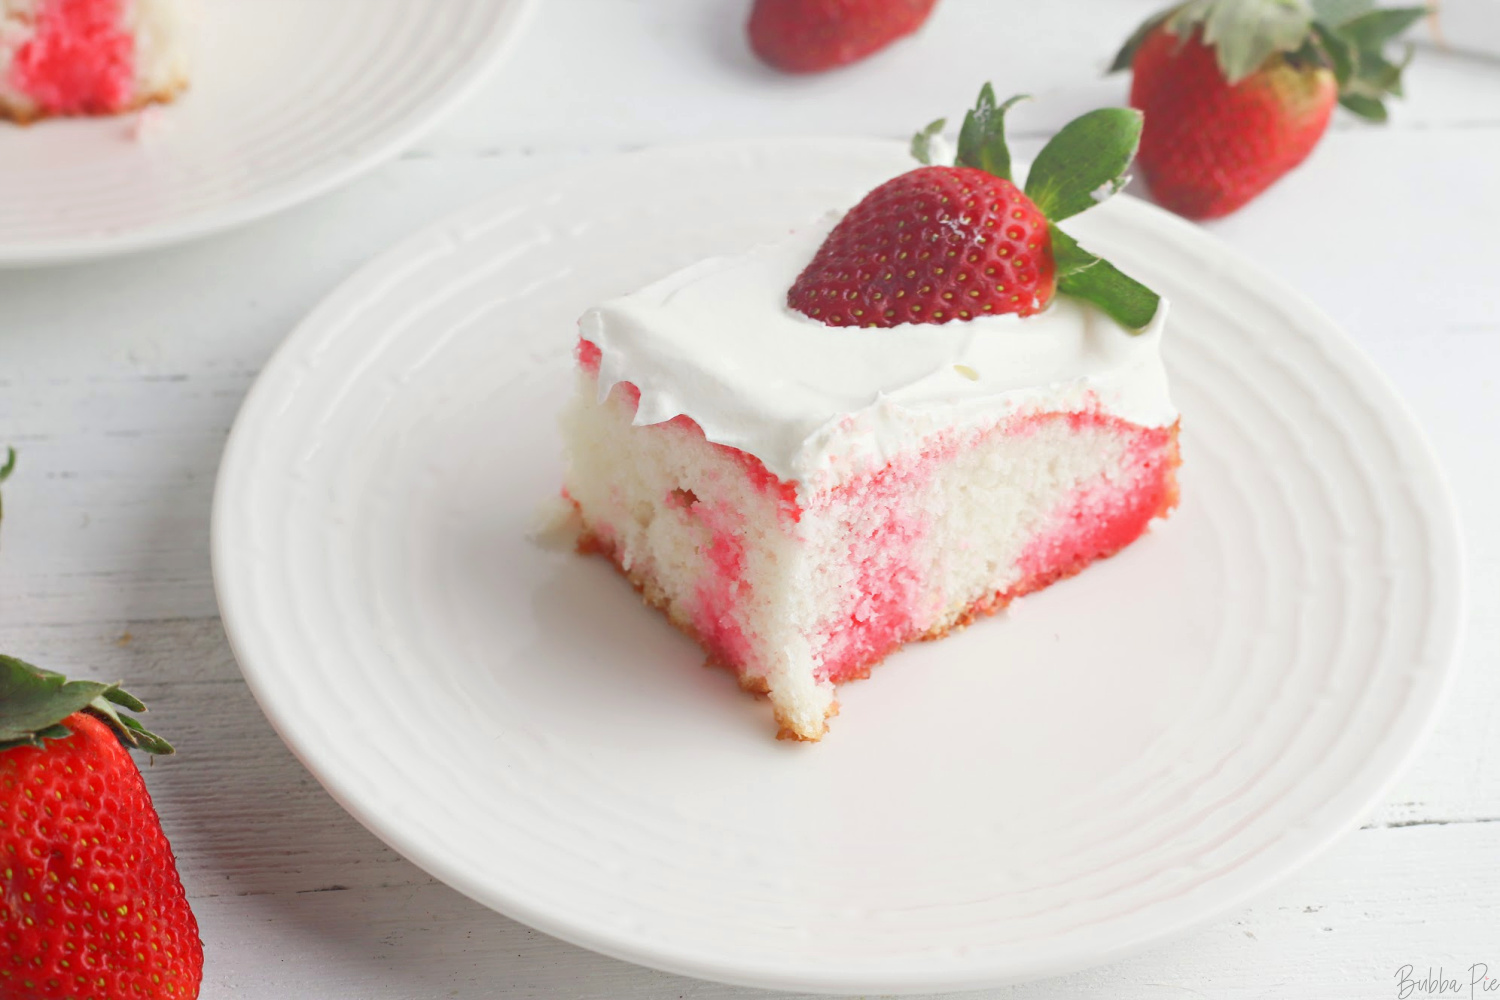 Strawberry Poke Cake made with box cake mix and jell-o.